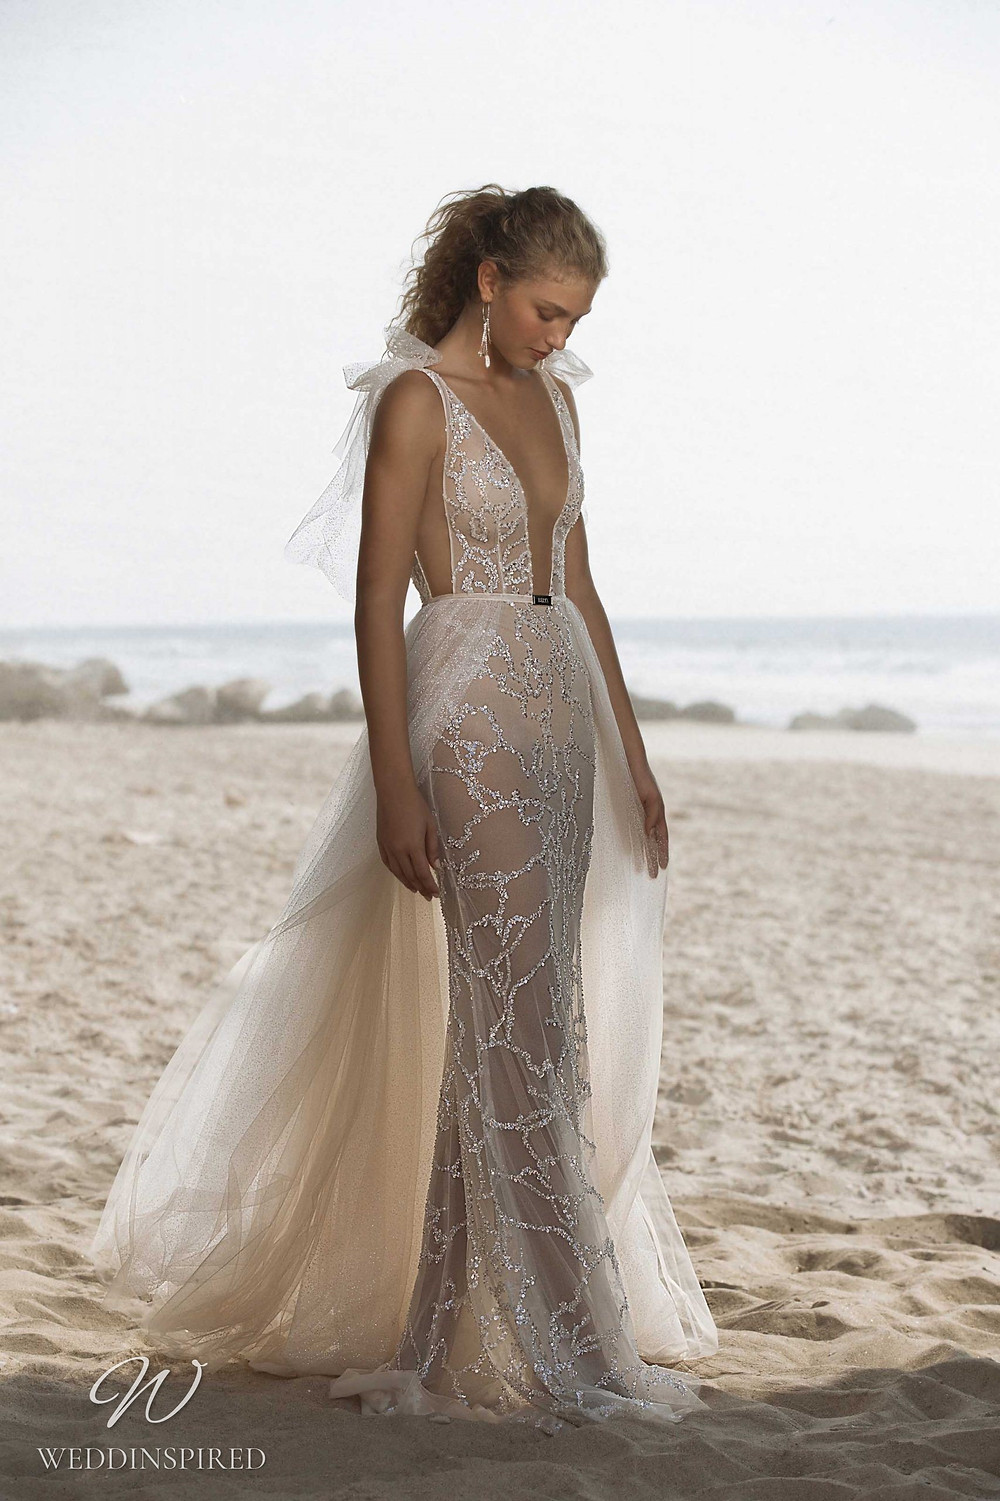 A Muse by Berta mesh and tulle ivory beach mermaid wedding dress with a detachable skirt and a v neckline